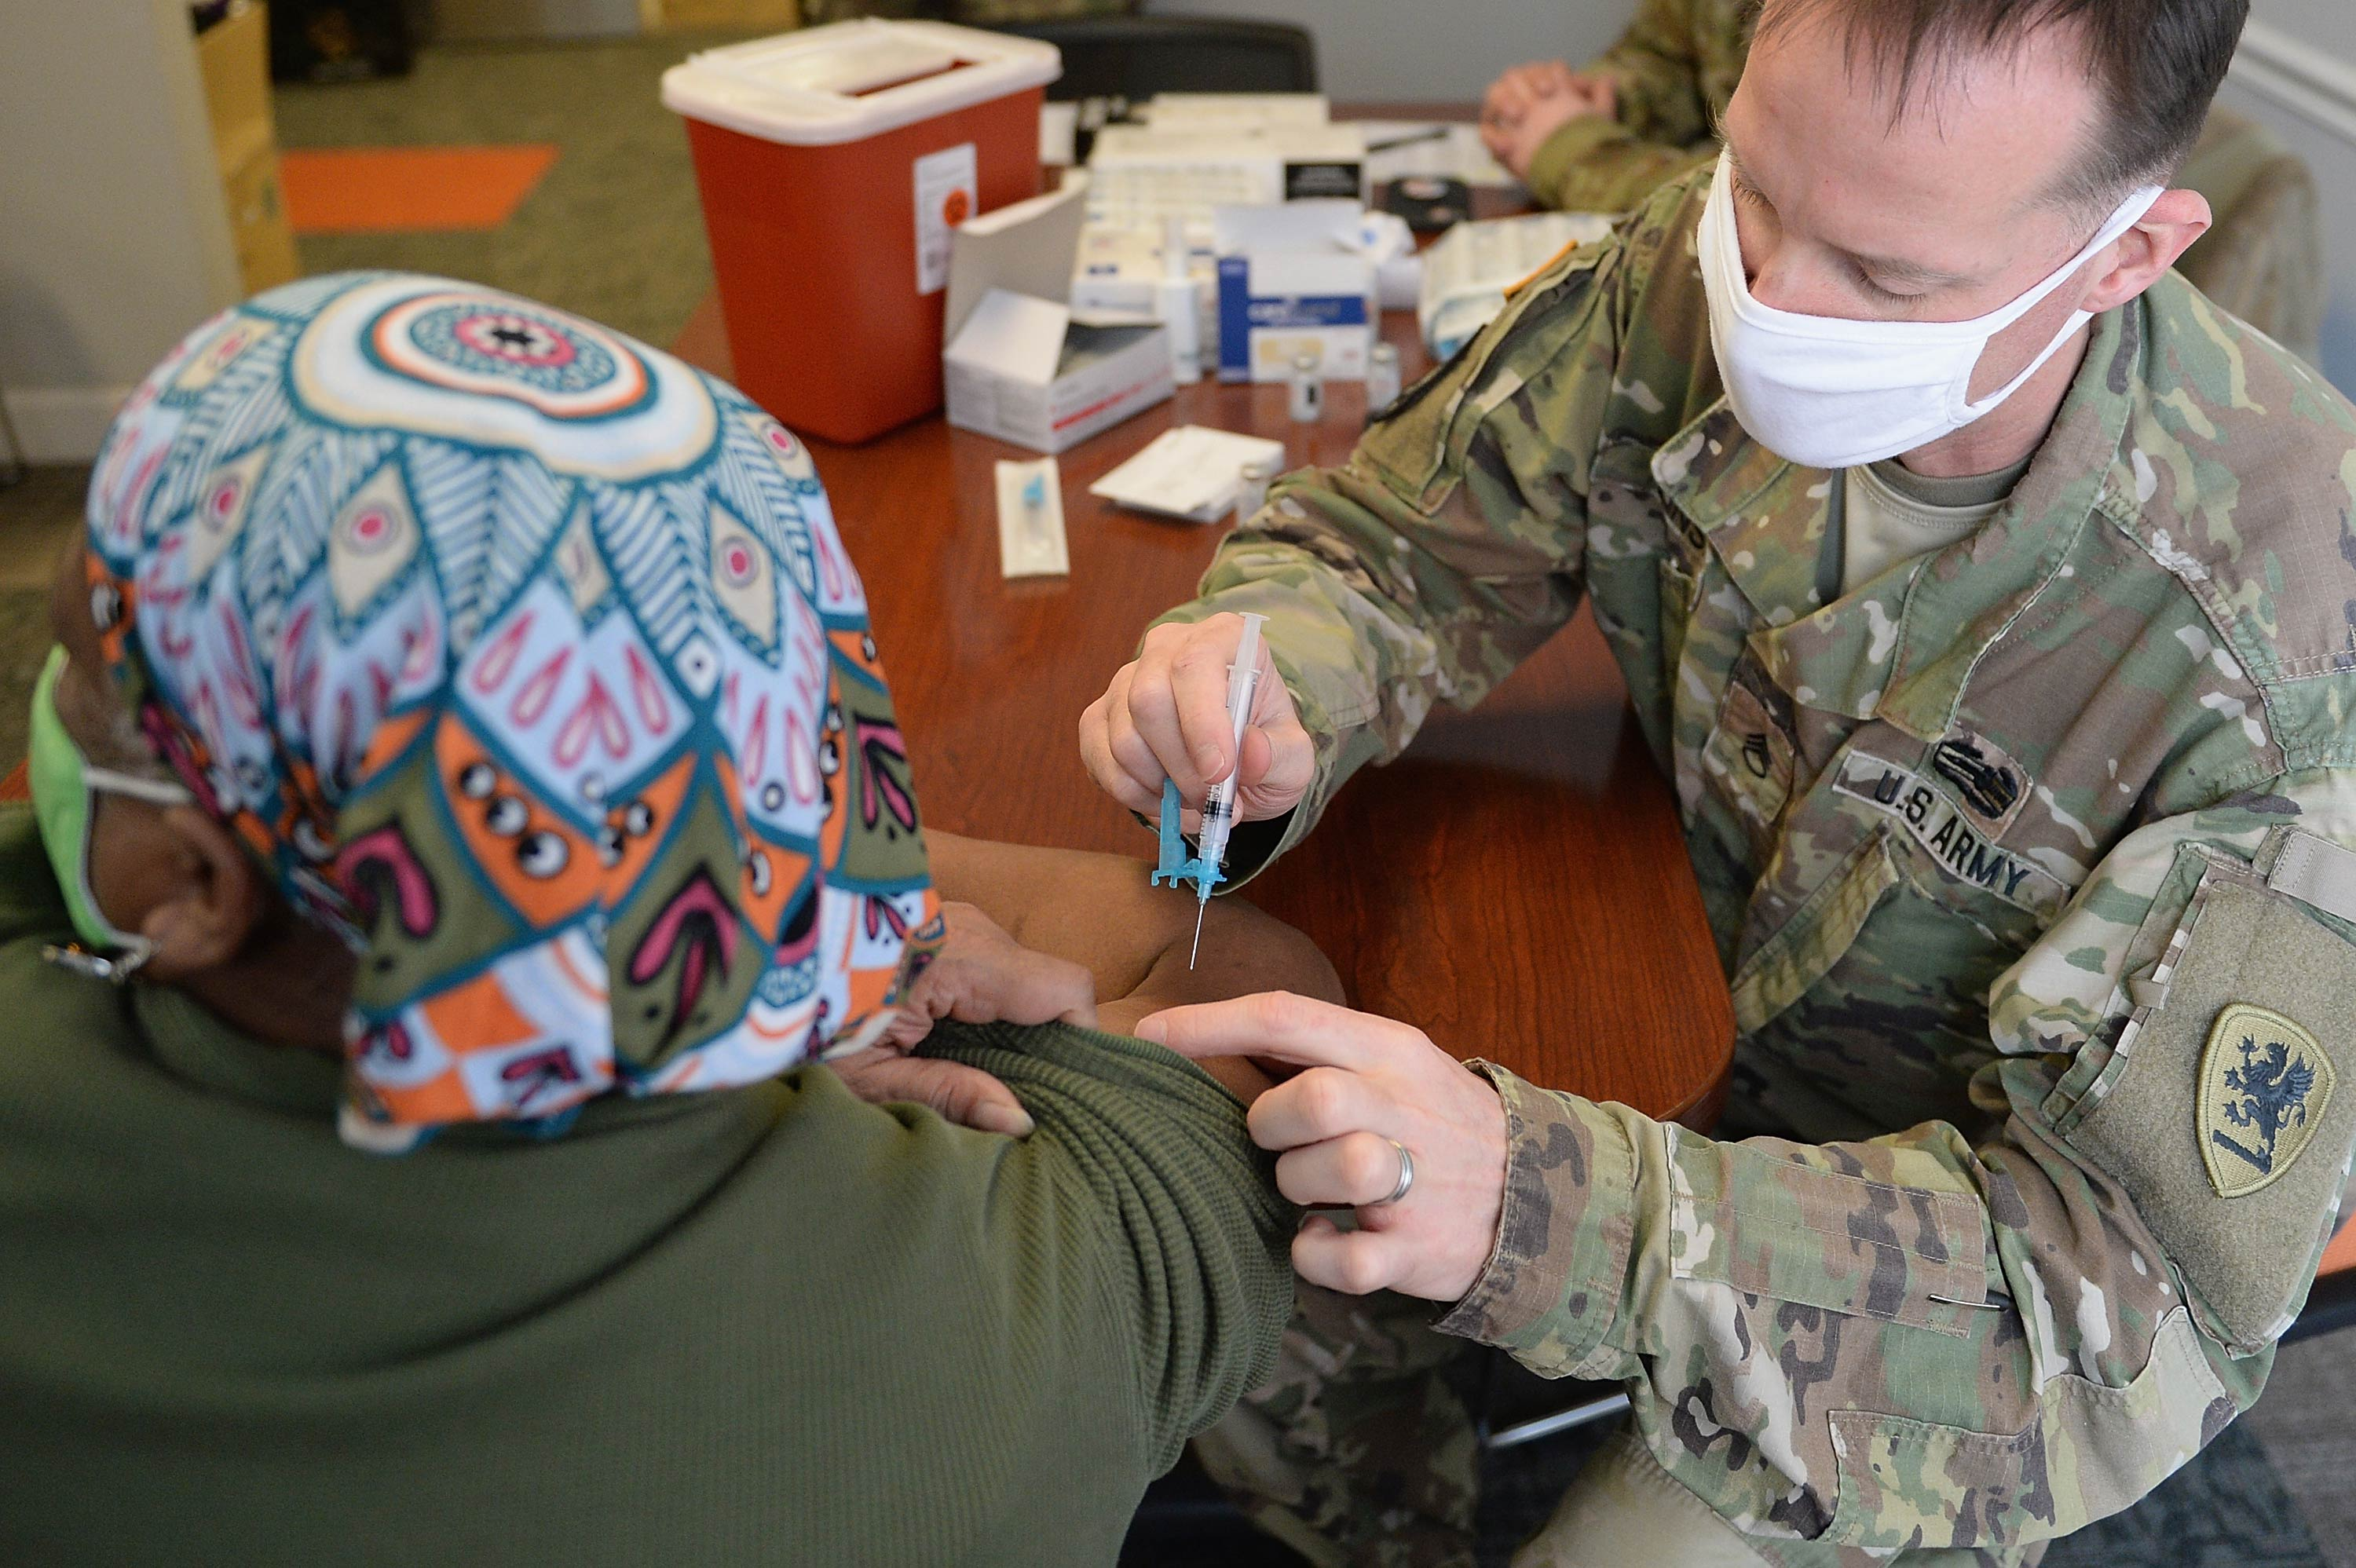 A woman receives a Covid-19 vaccine during a vaccination event on February 11 at the Jeff Vander Lou Senior living facility in St Louis, Missouri.